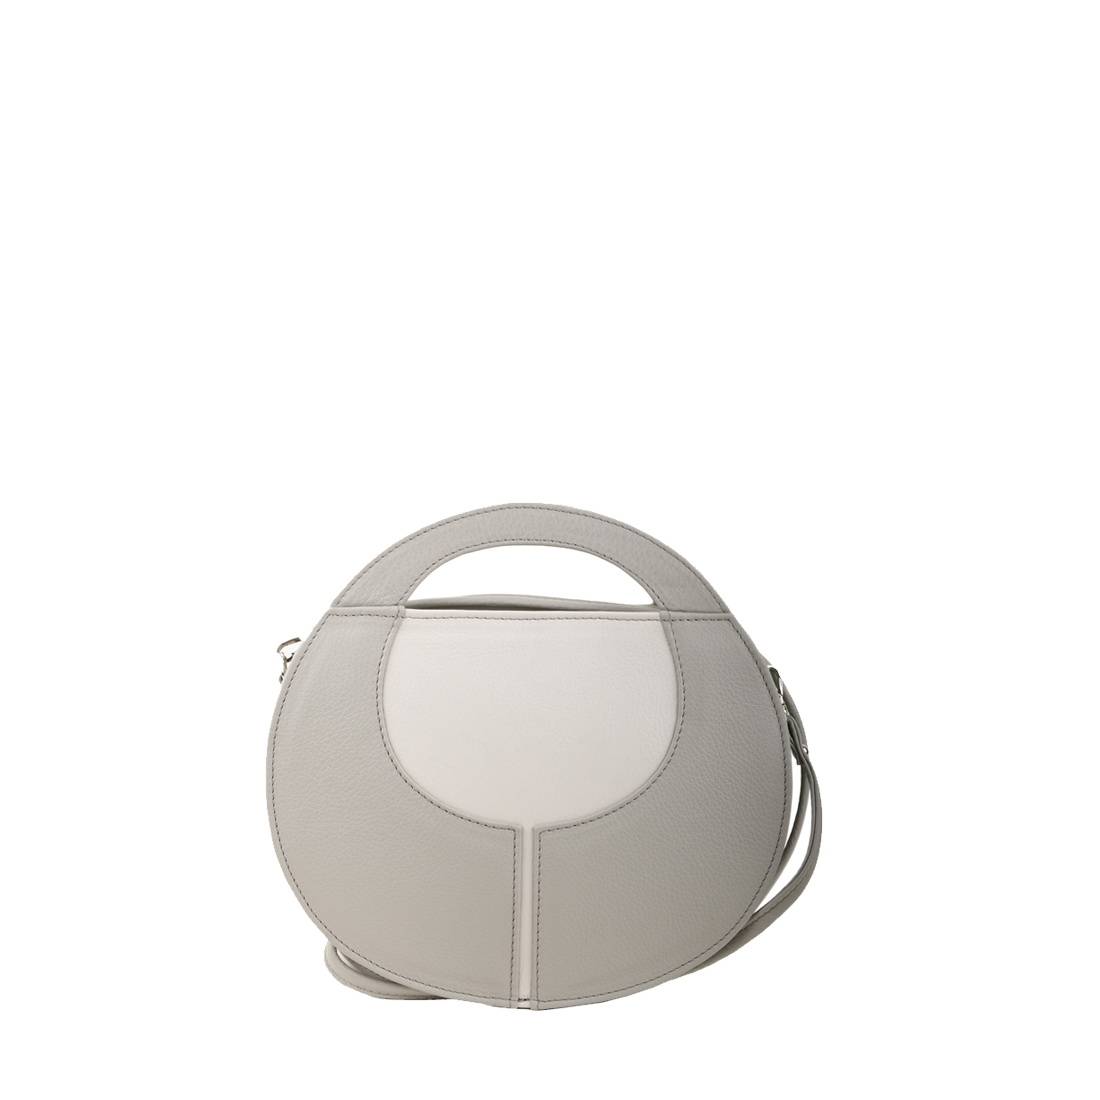 Olivia Plaster Leather Shoulder Bag